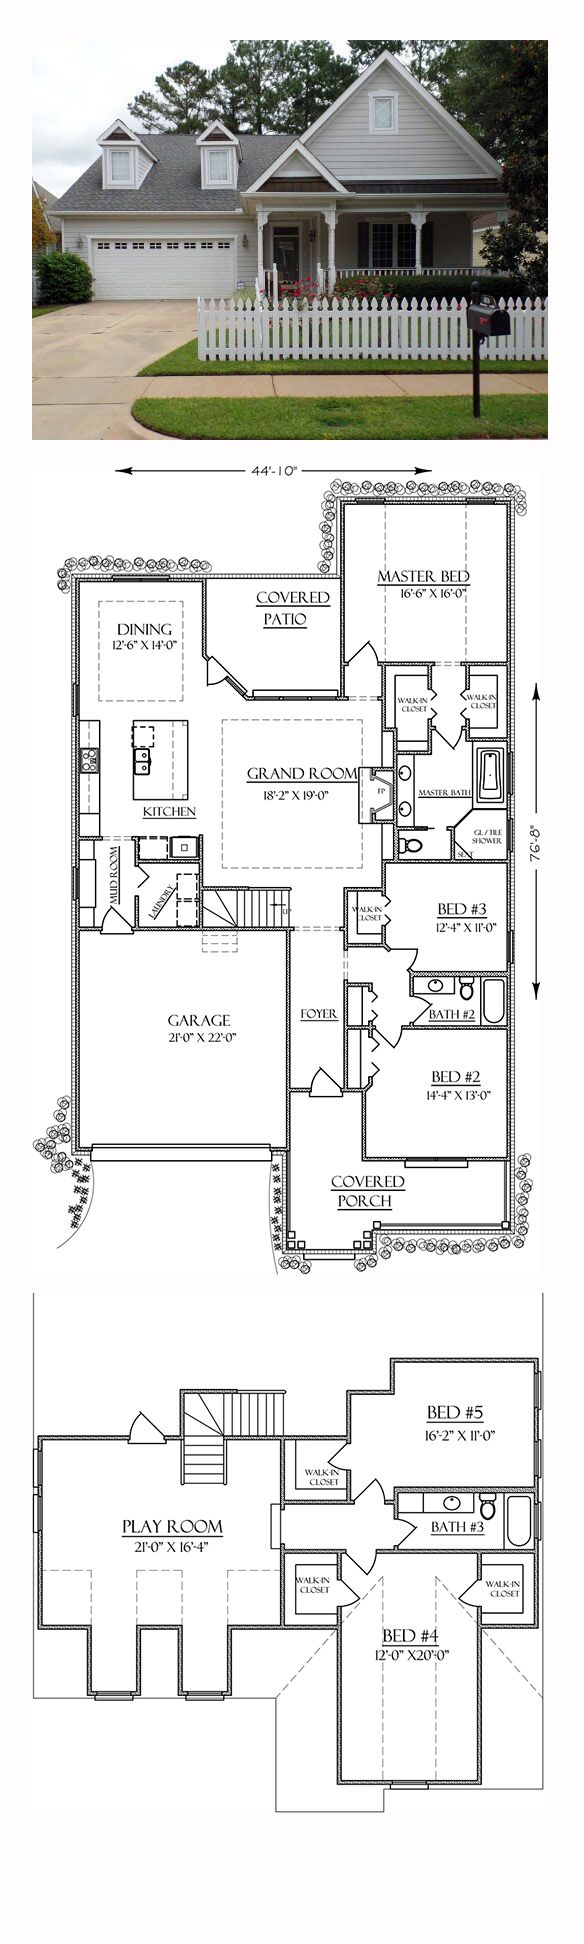 25 best ideas about house plans design on pinterest New house blueprints